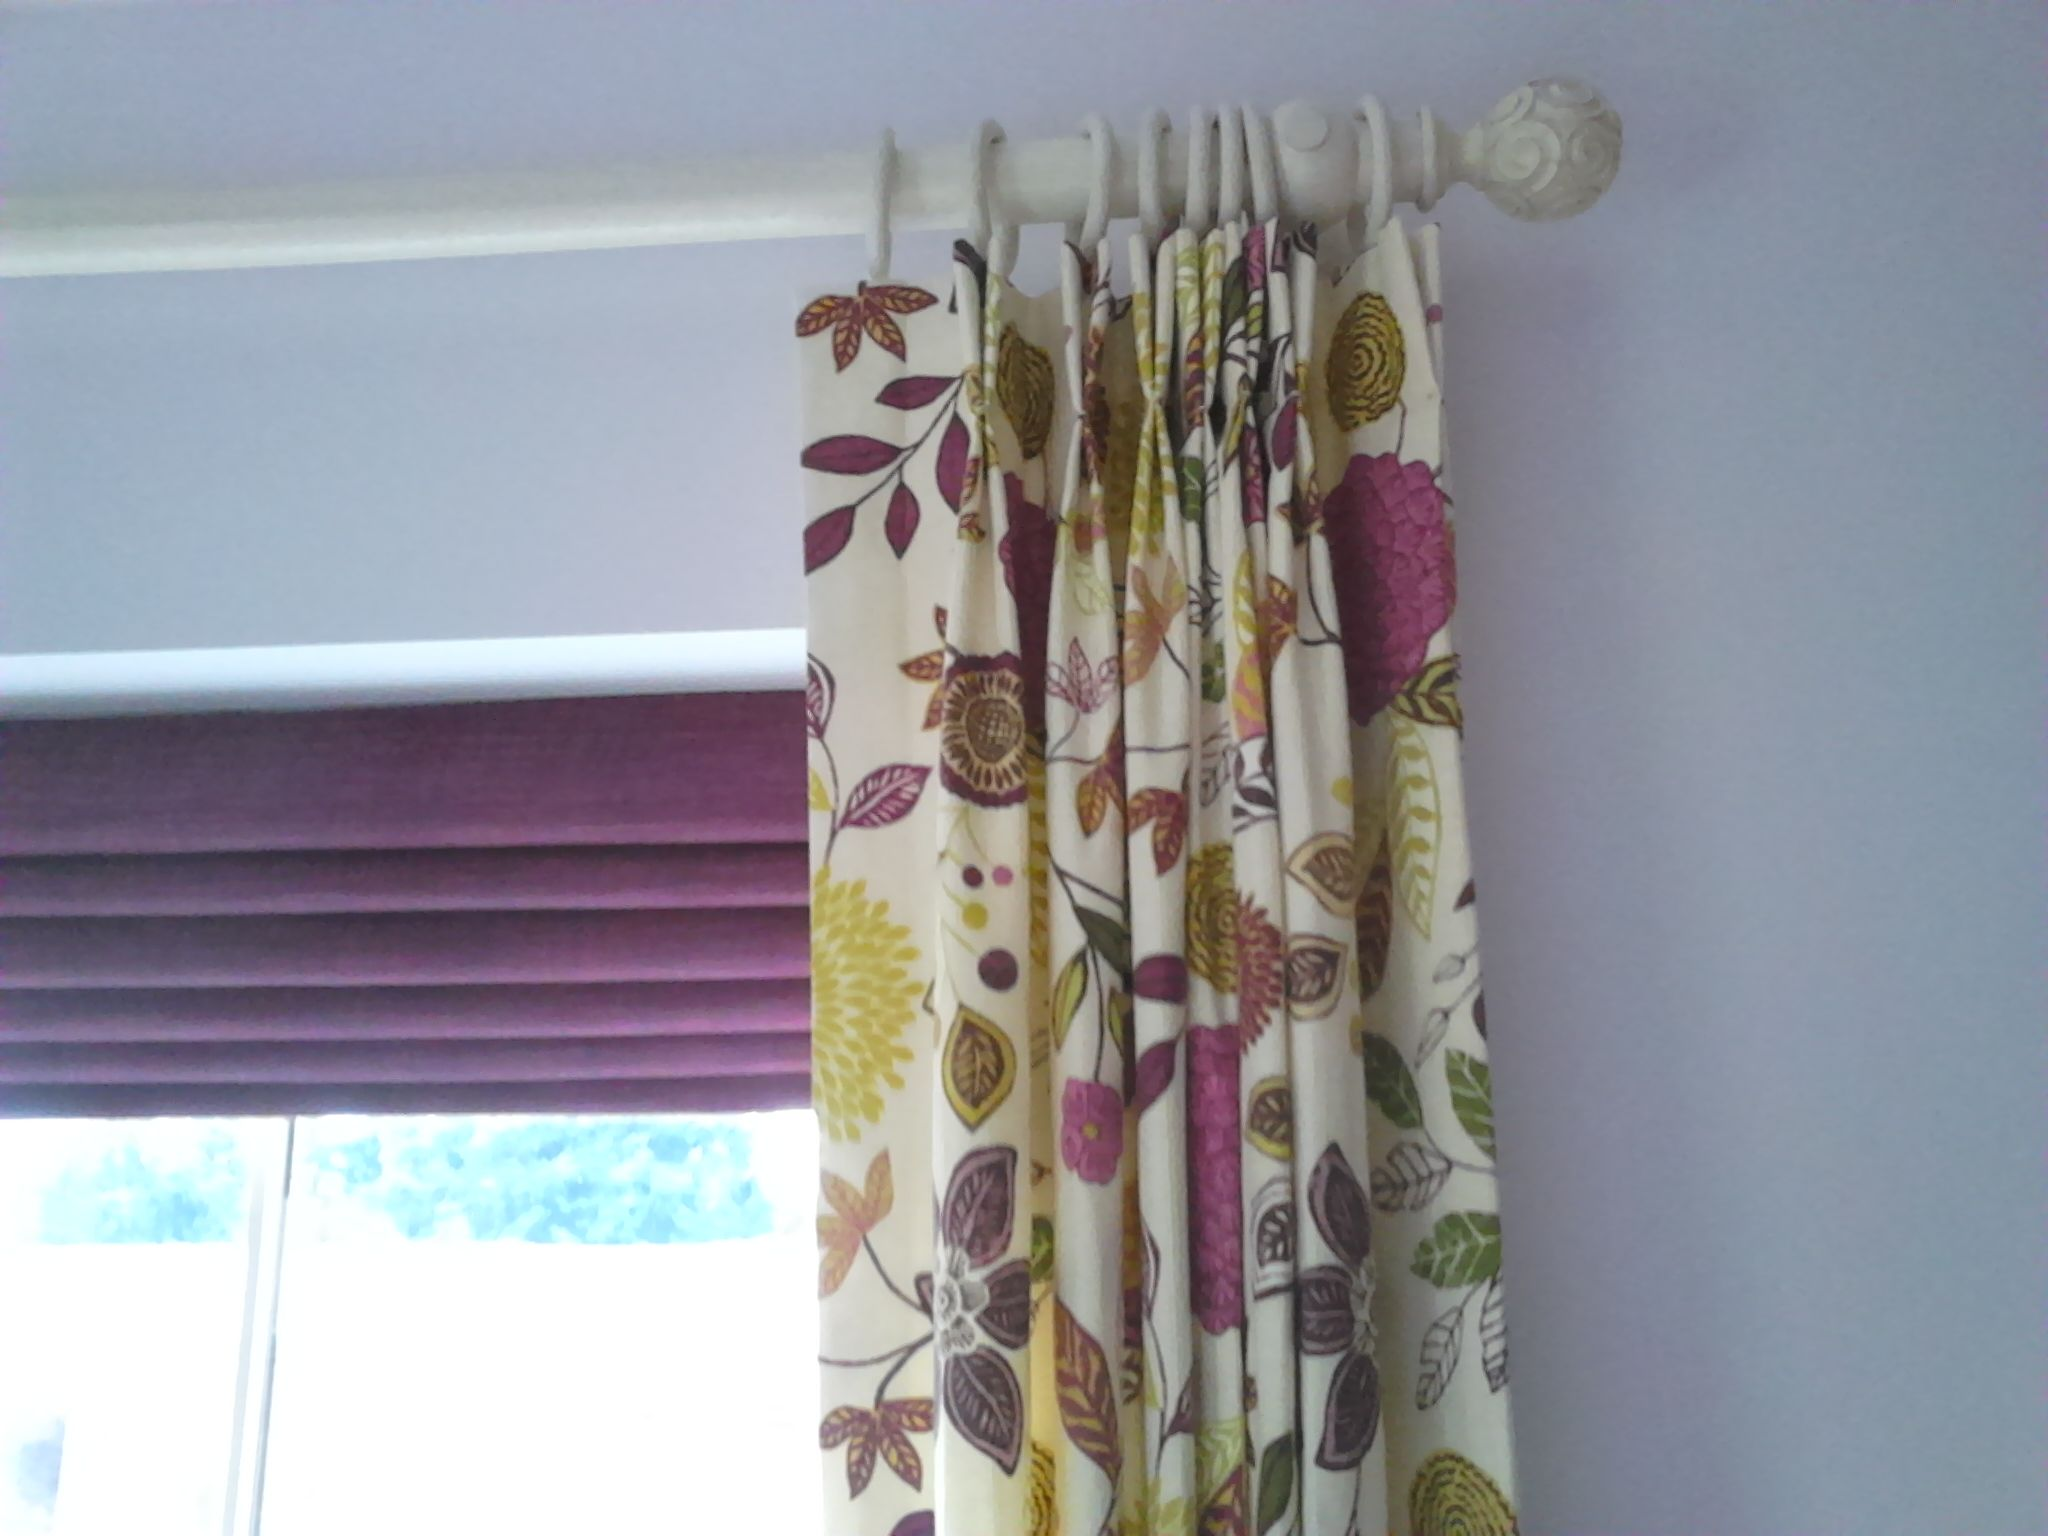 Co-ordination from Harlequin.  Pole from Price & Co.